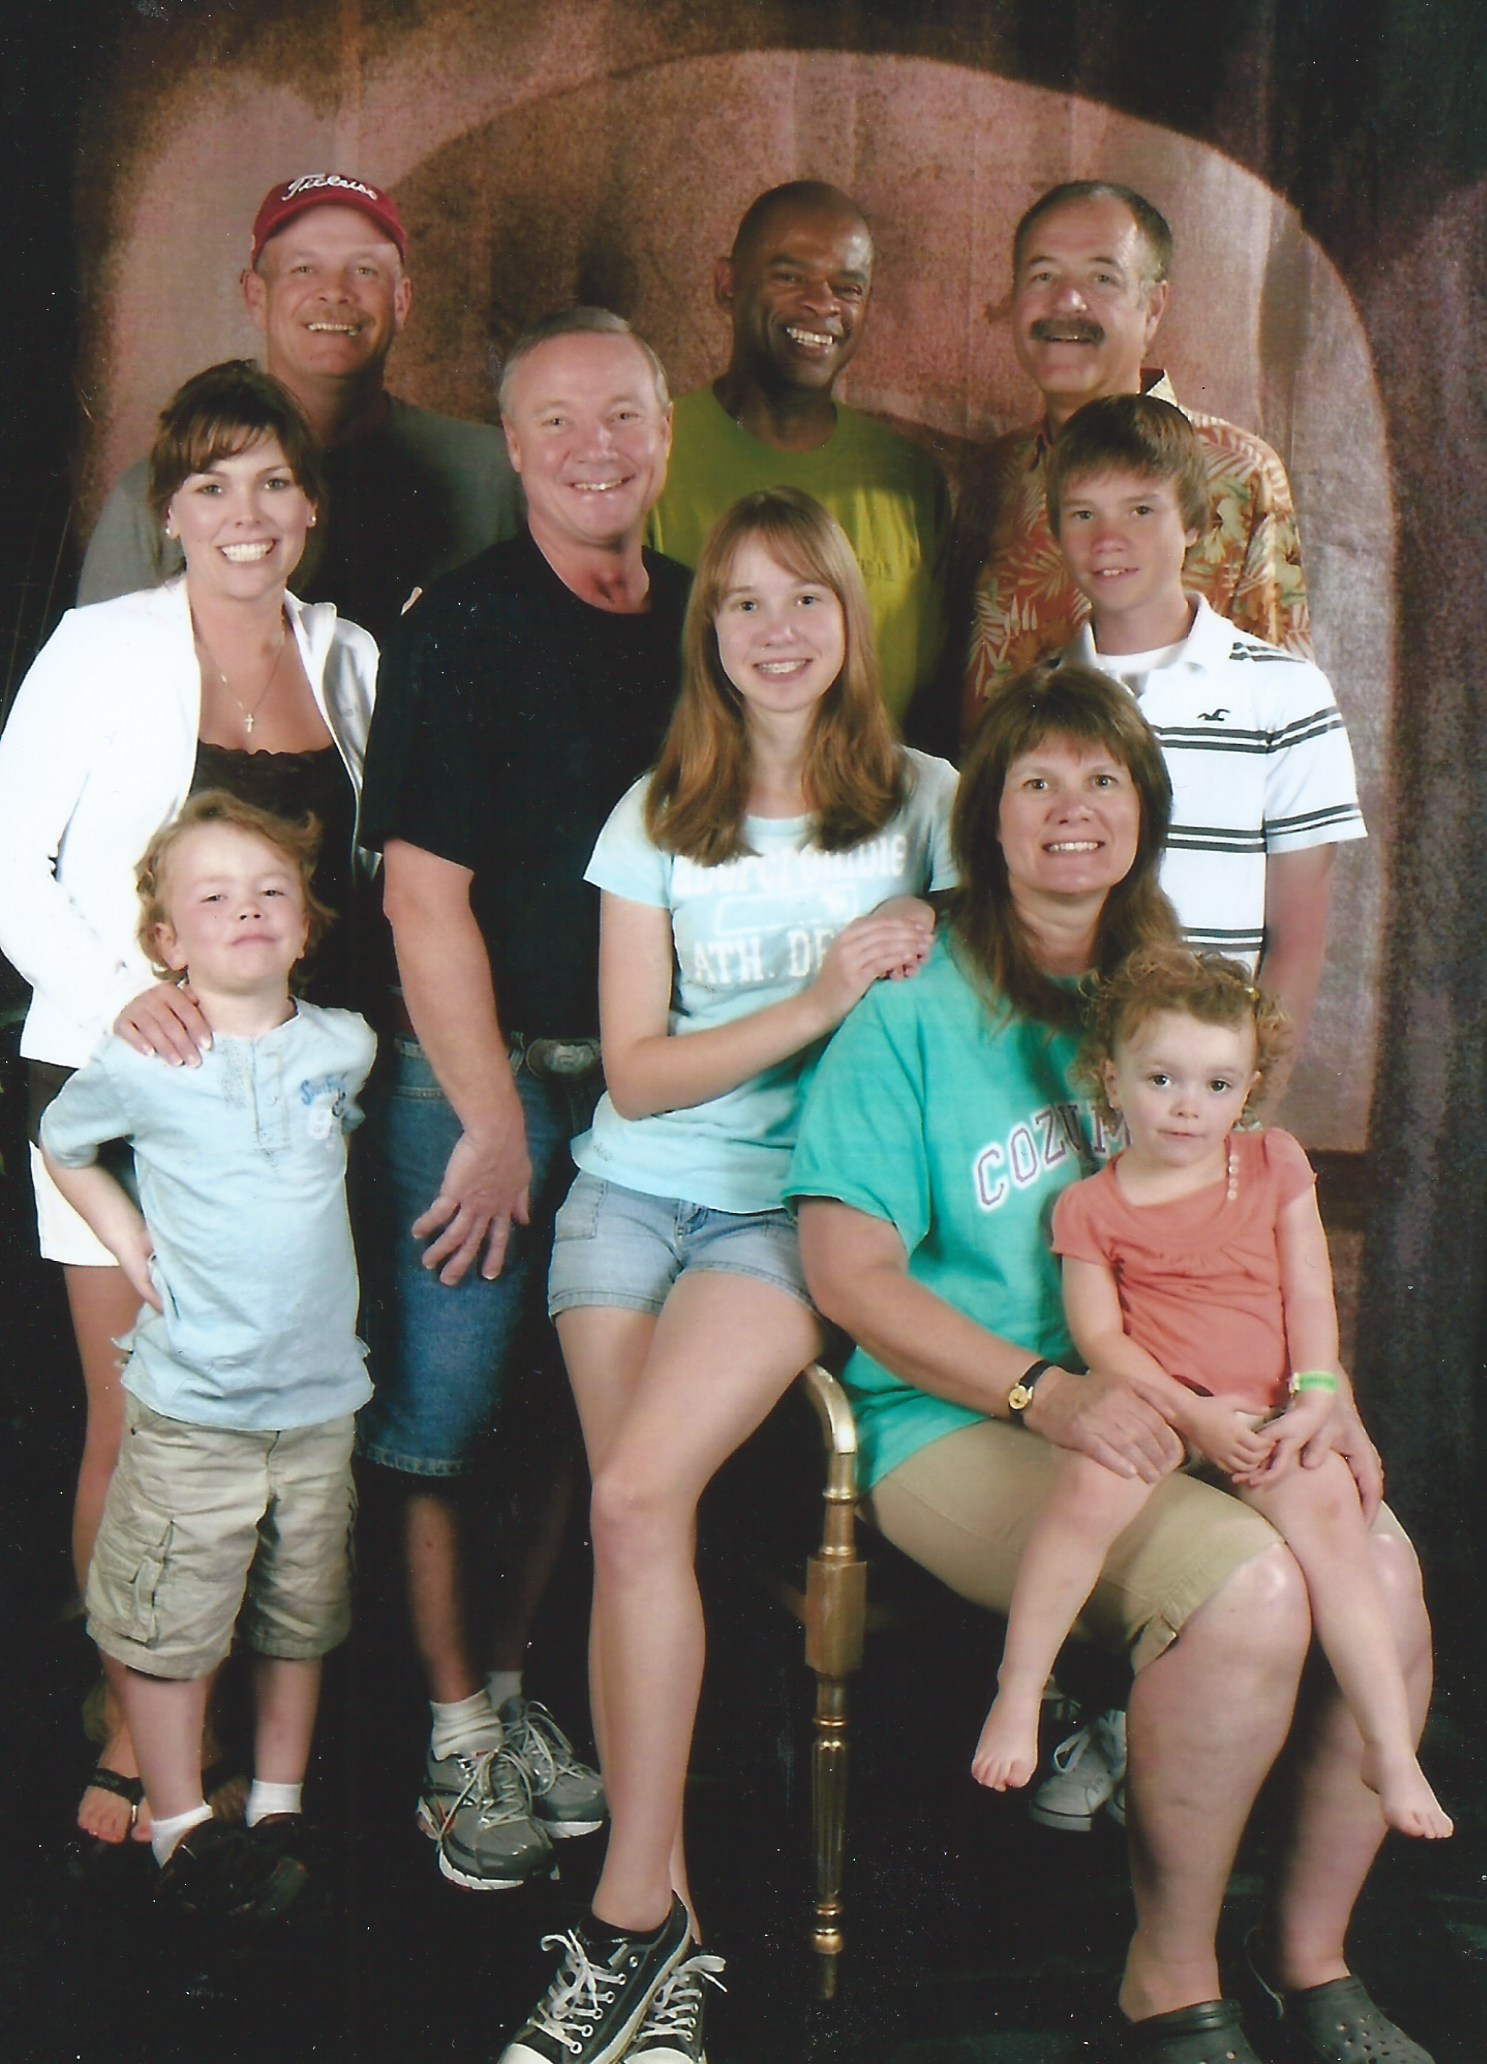 2009- Carnival Valor Cruise with Family